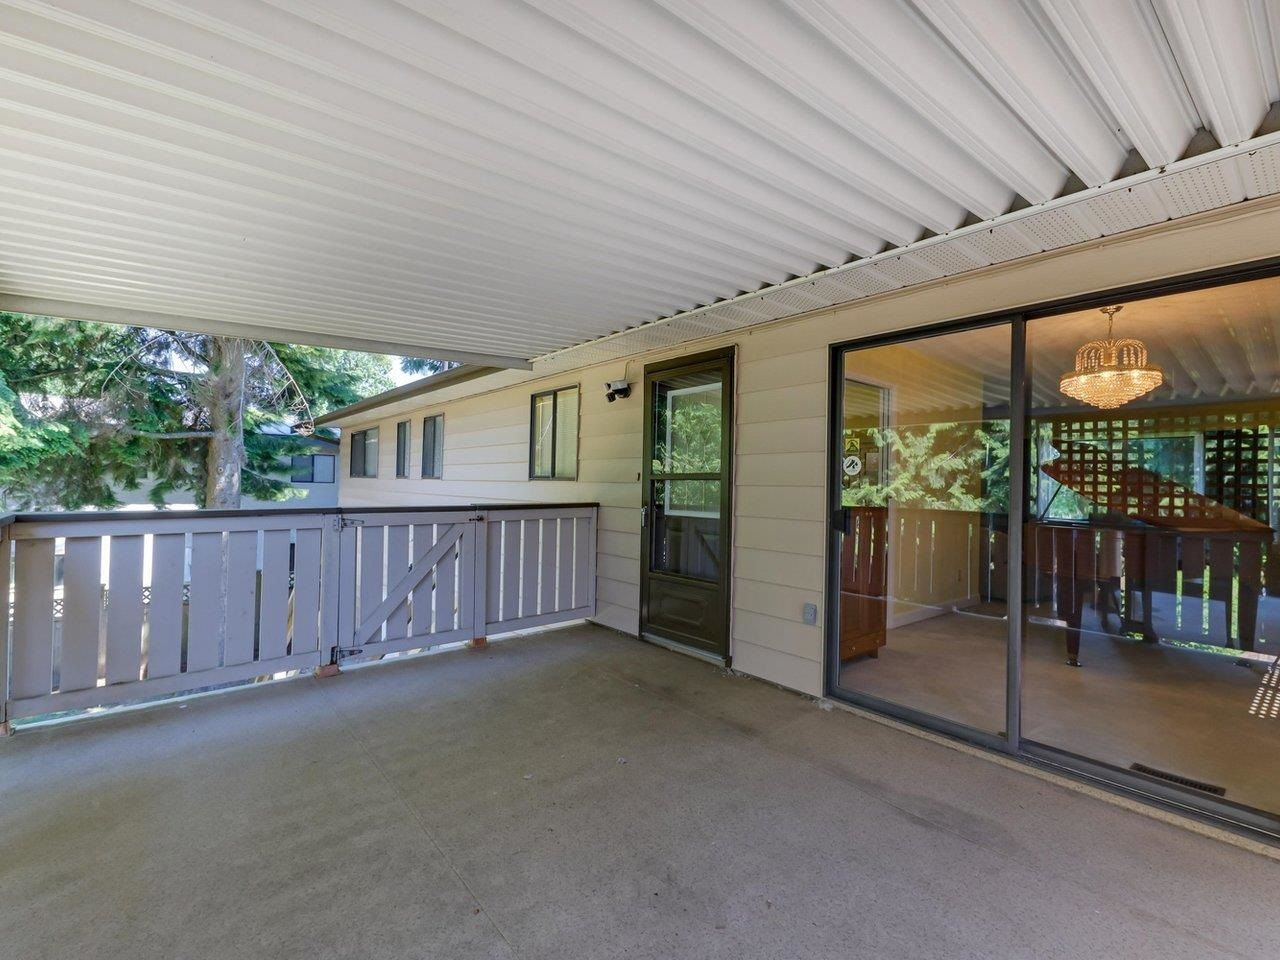 Photo 18: Photos: 10225 142A Street in Surrey: Whalley House for sale (North Surrey)  : MLS®# R2596966